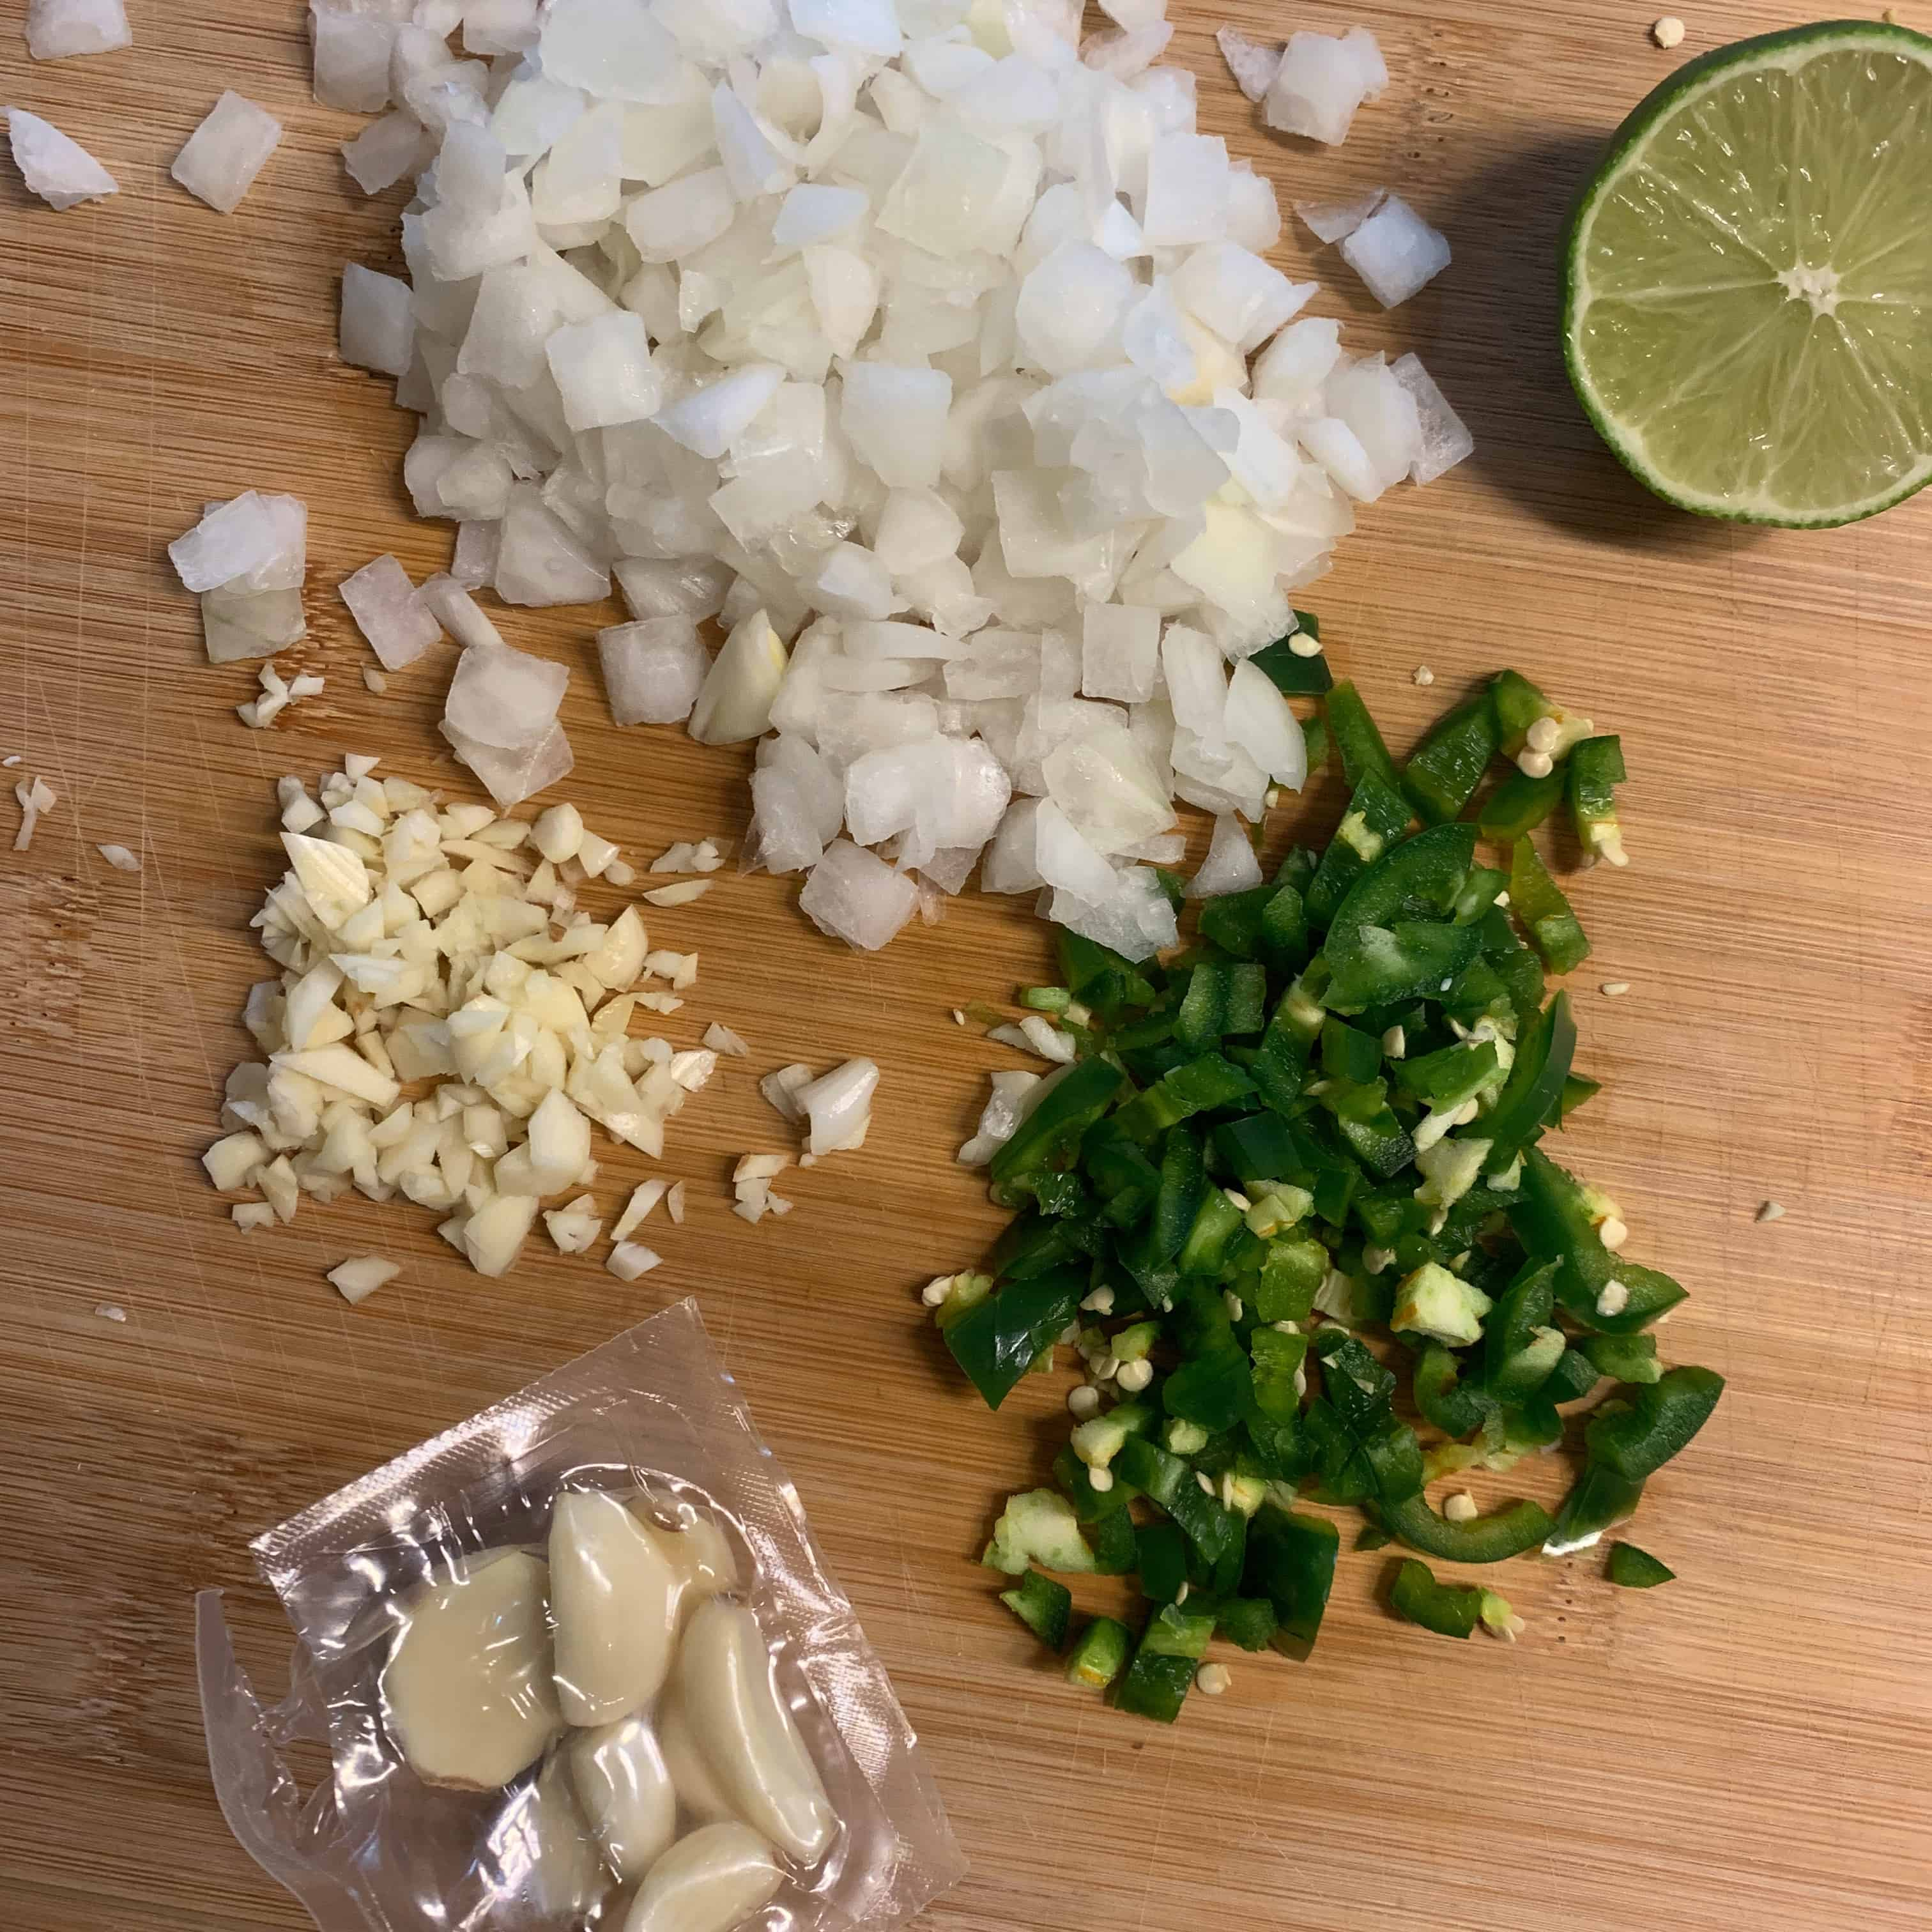 onion, jalapeño, and garlic on a cutting board with half a lime